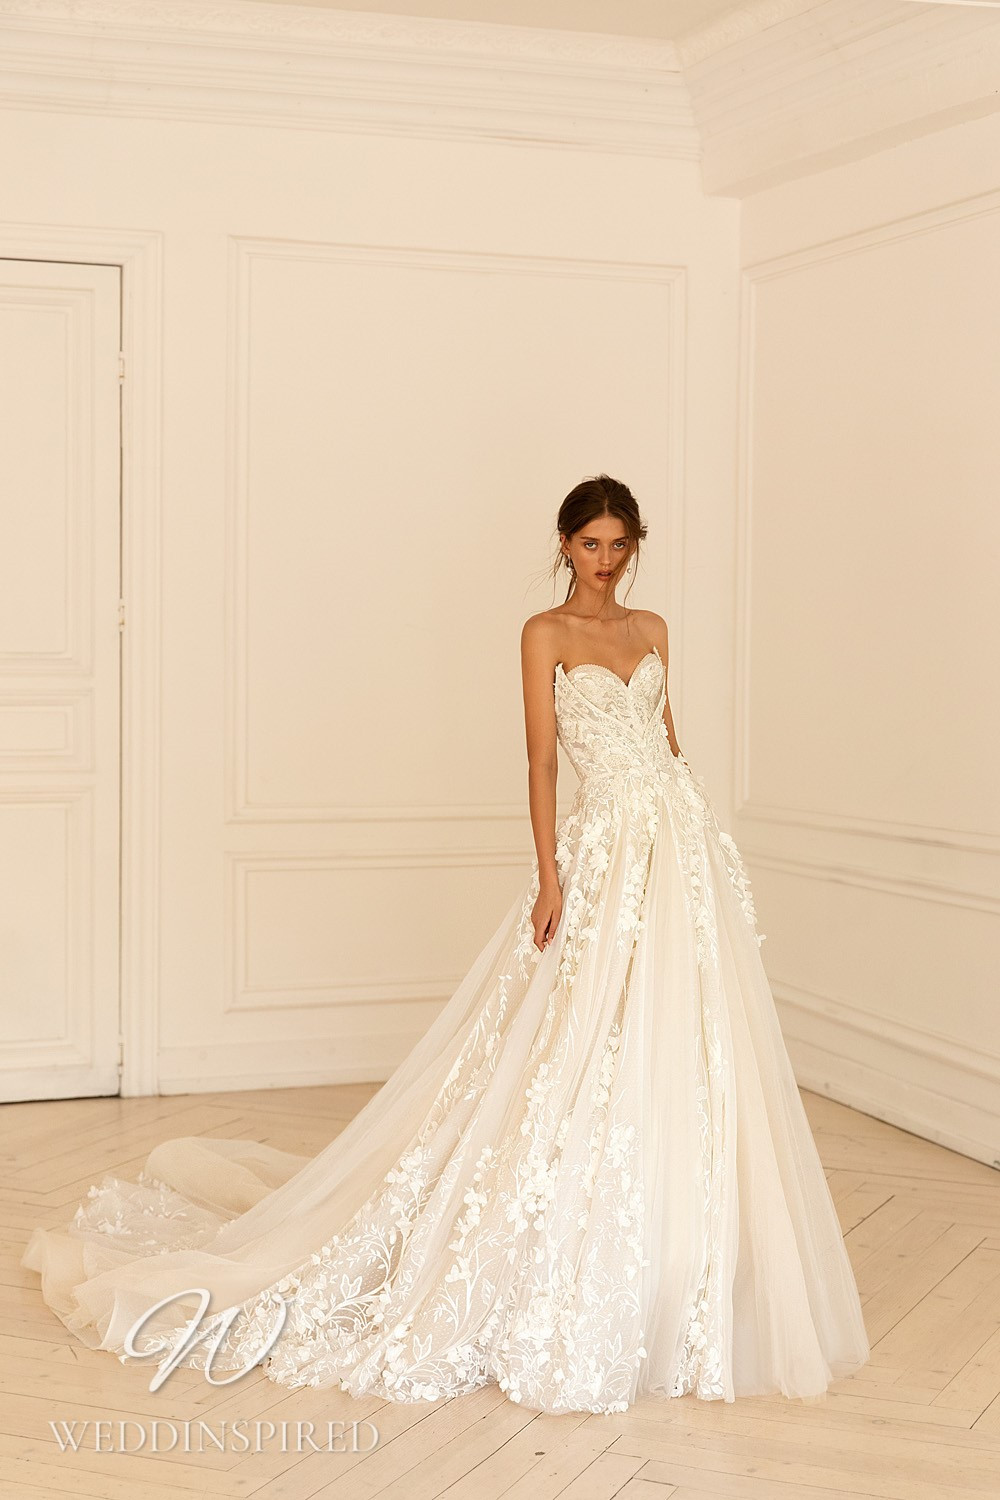 A WONÁ Concept 2021 strapless tulle and lace A-line wedding dress